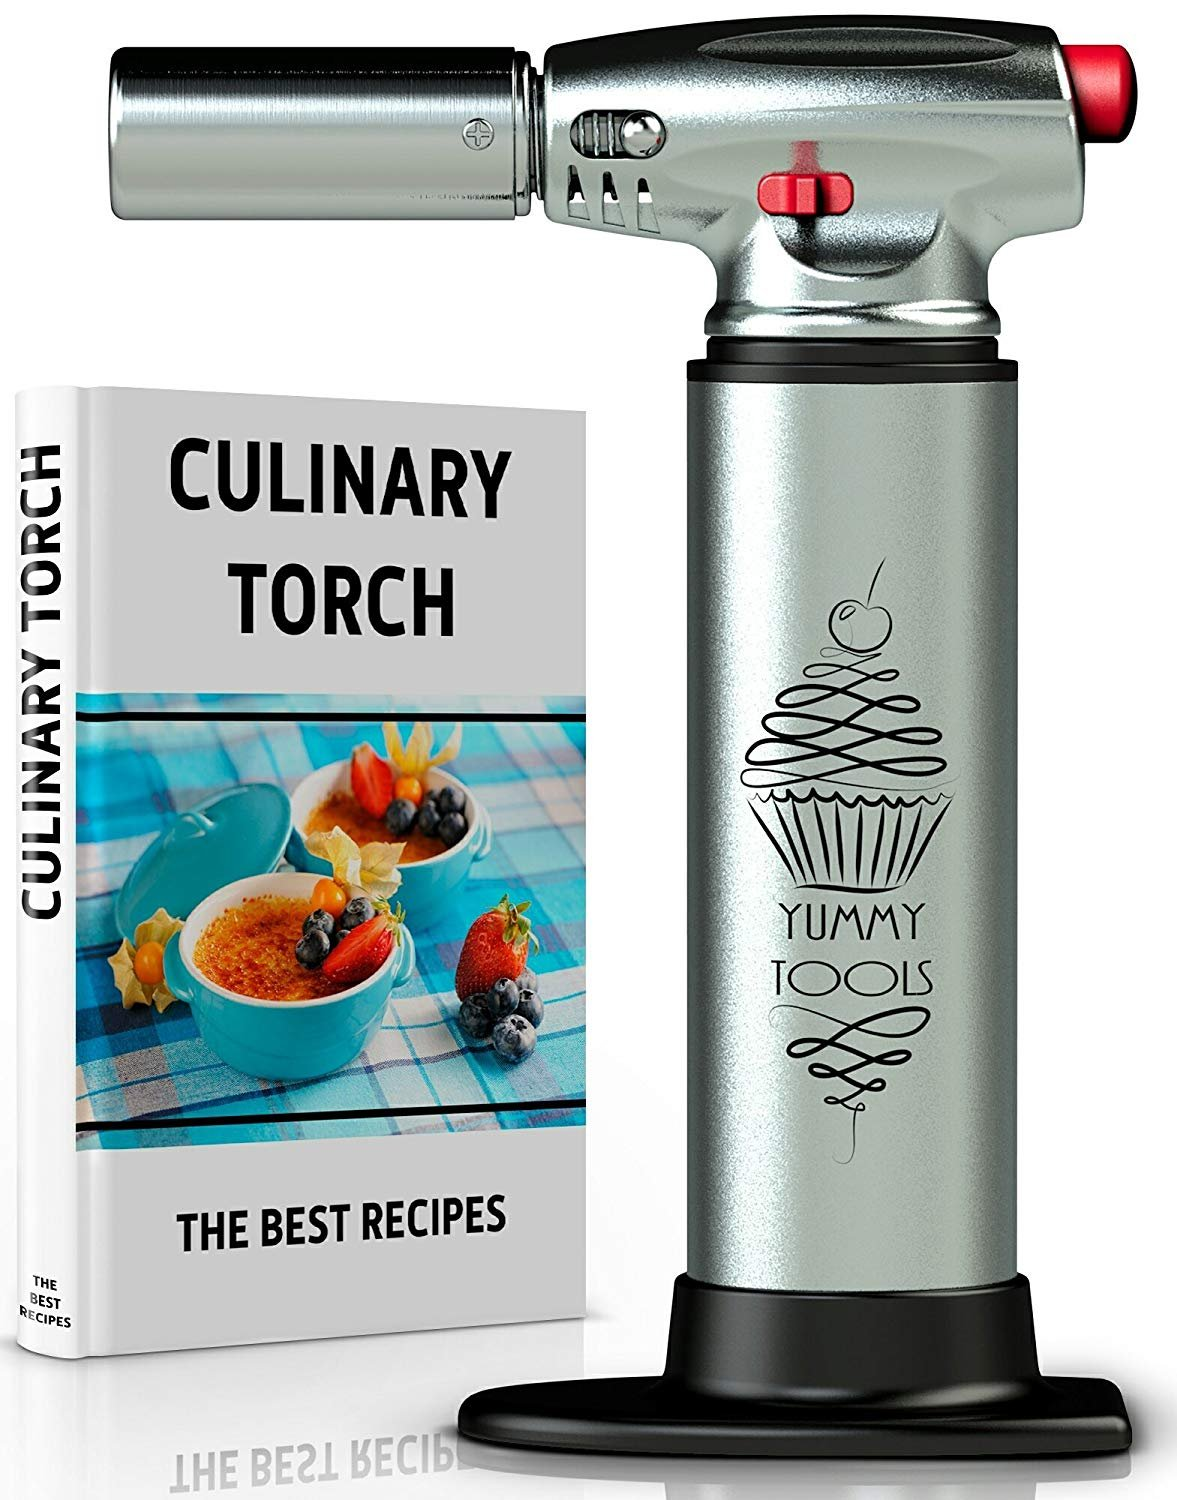 BEST CULINARY TORCH - Chef Torch for Cooking Crème Brulee - Aluminum Hand Butane Kitchen Torch - Blow Torch with Adjustable Flame - Cooking Torch - Perfect for Baking, BBQs, and Crafts + Recipe